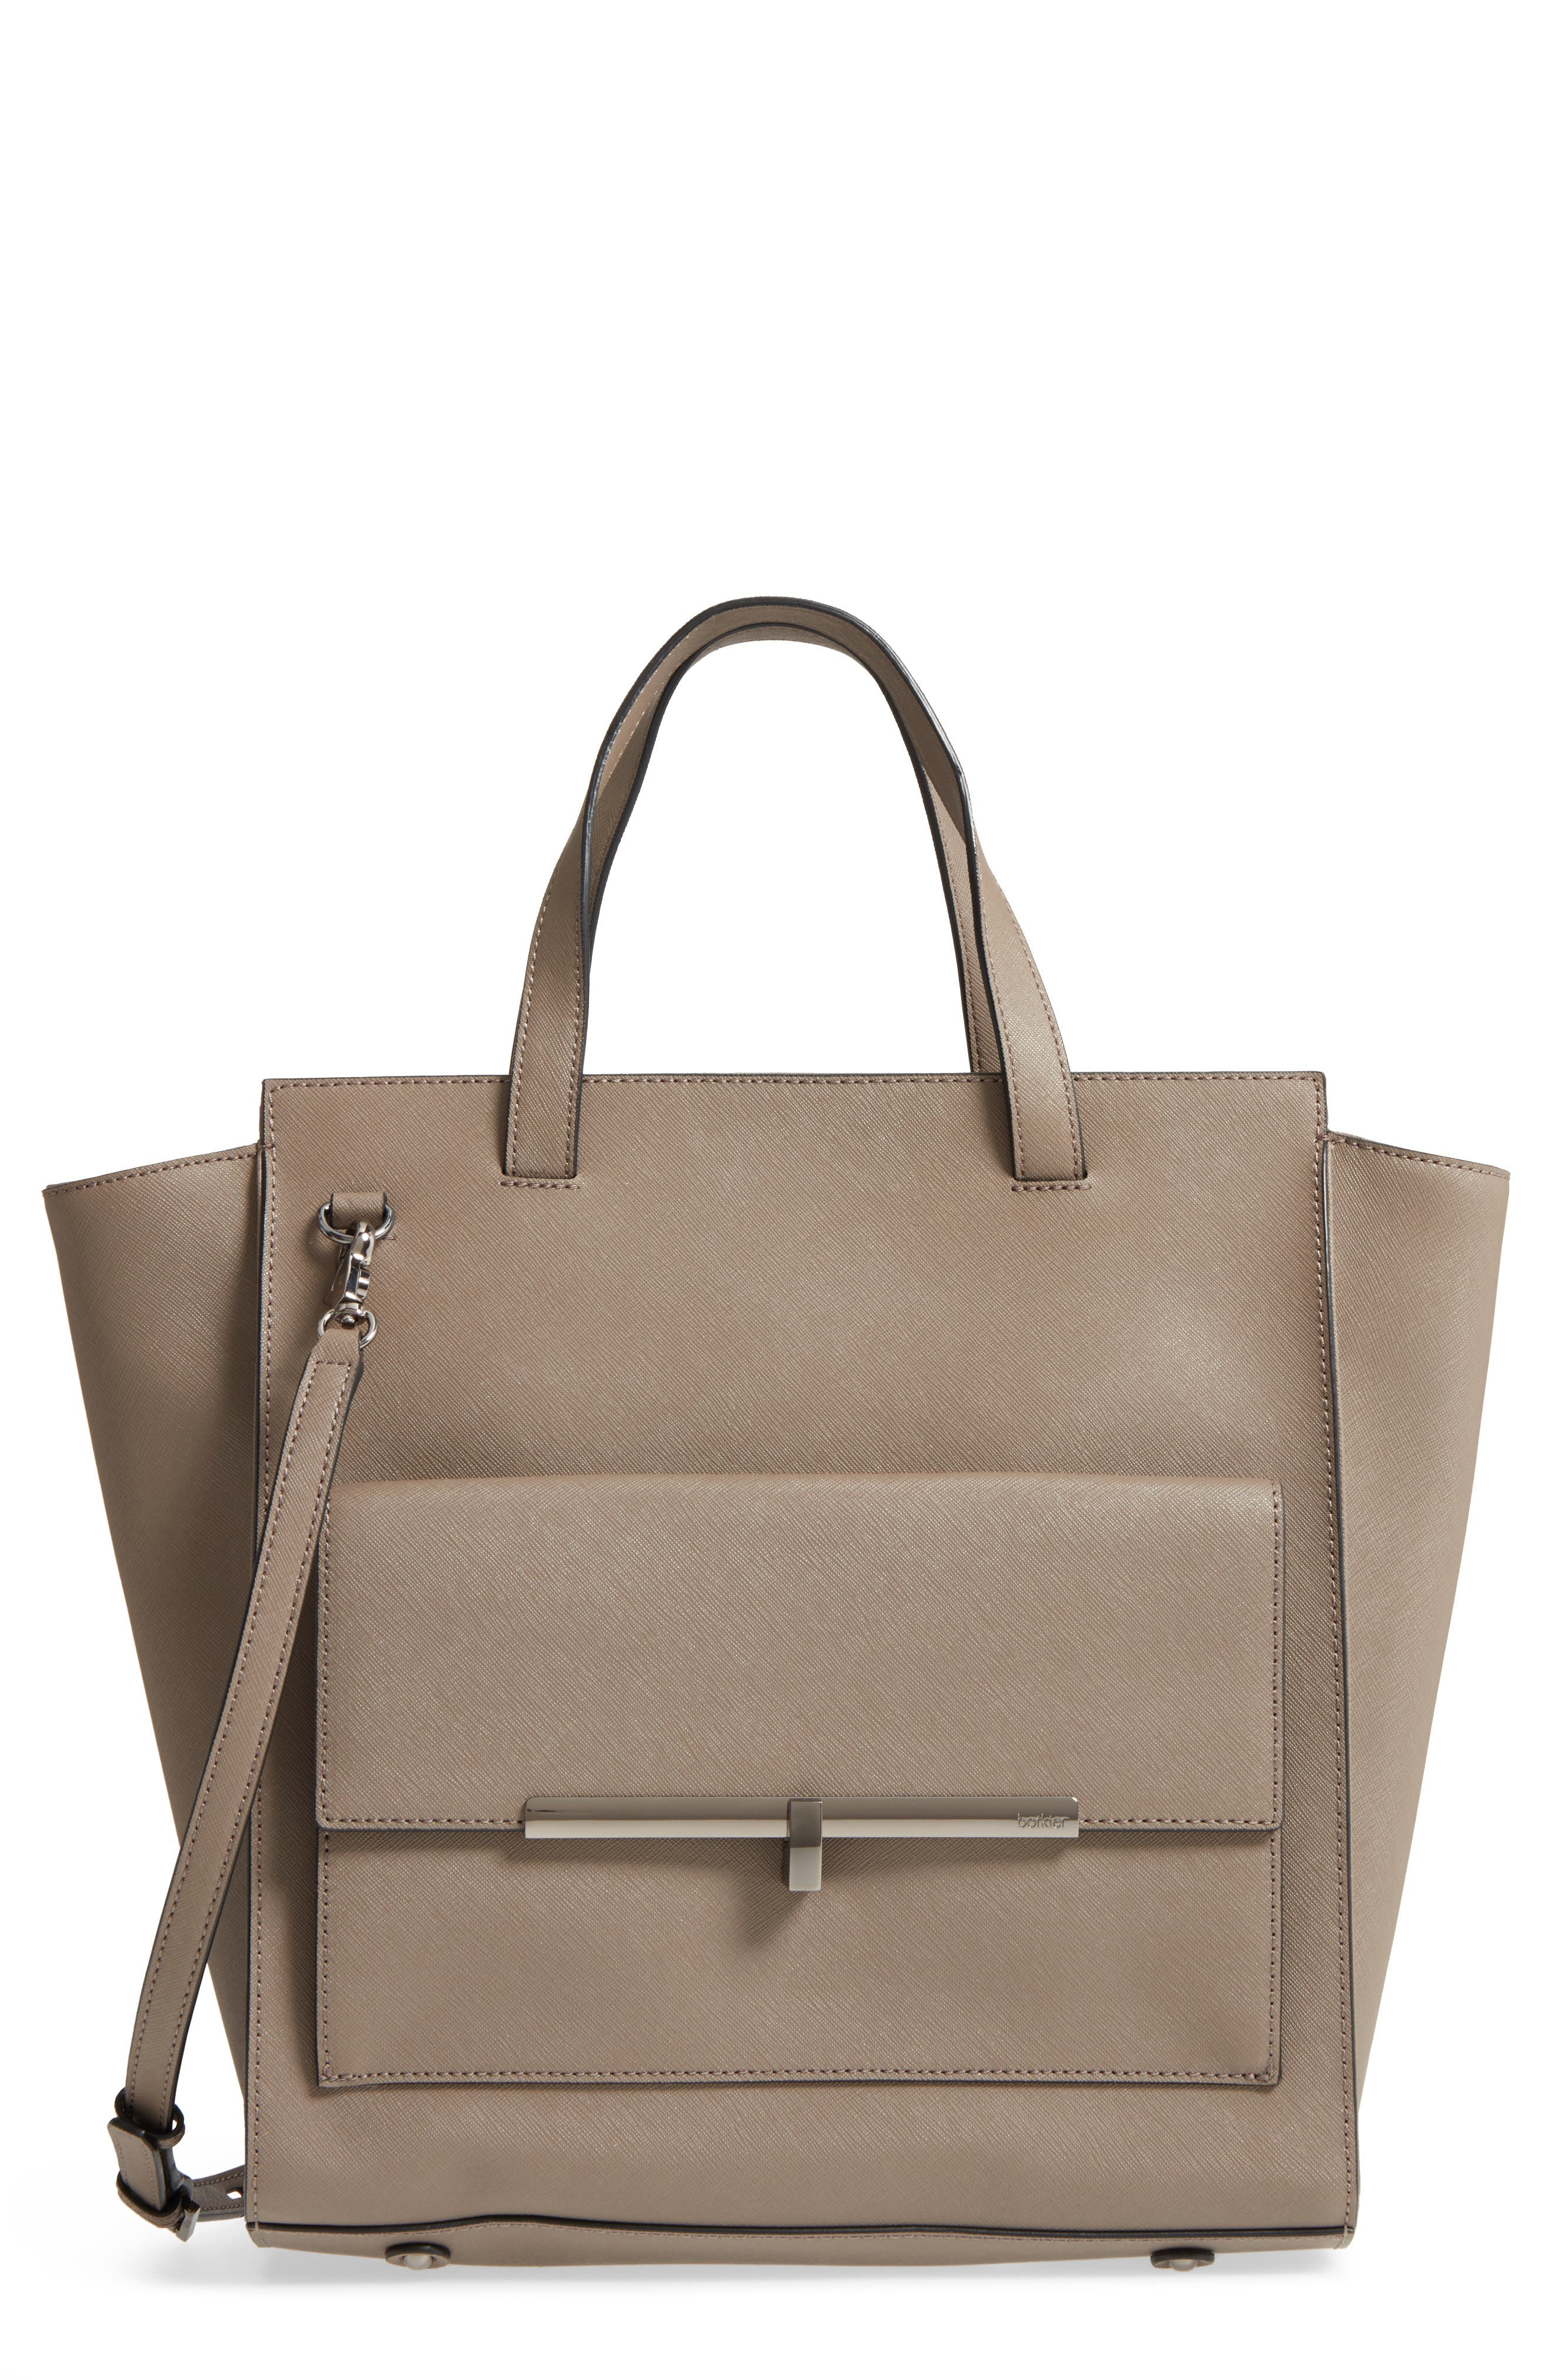 Main Image - Botkier Jagger Leather Tote